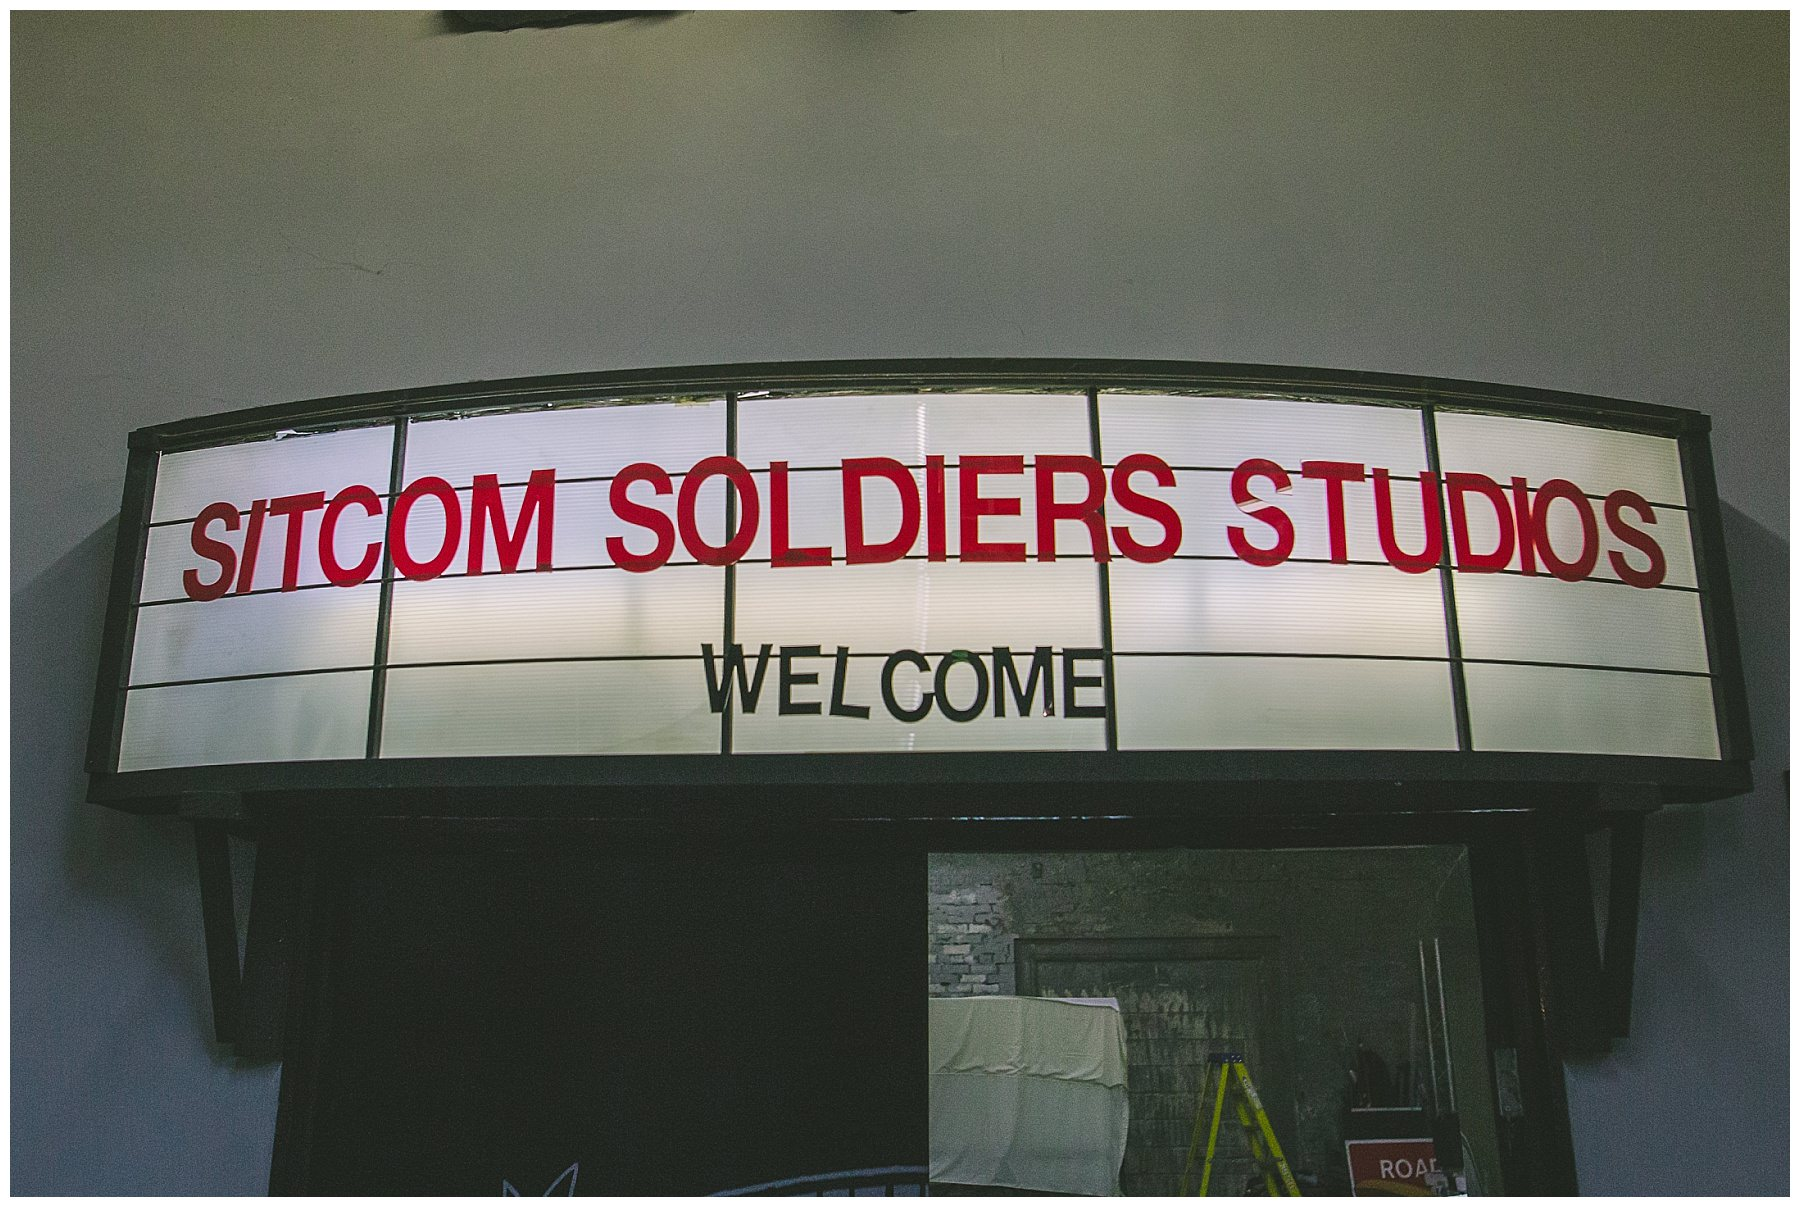 Welcome sign at sitcom soldiers